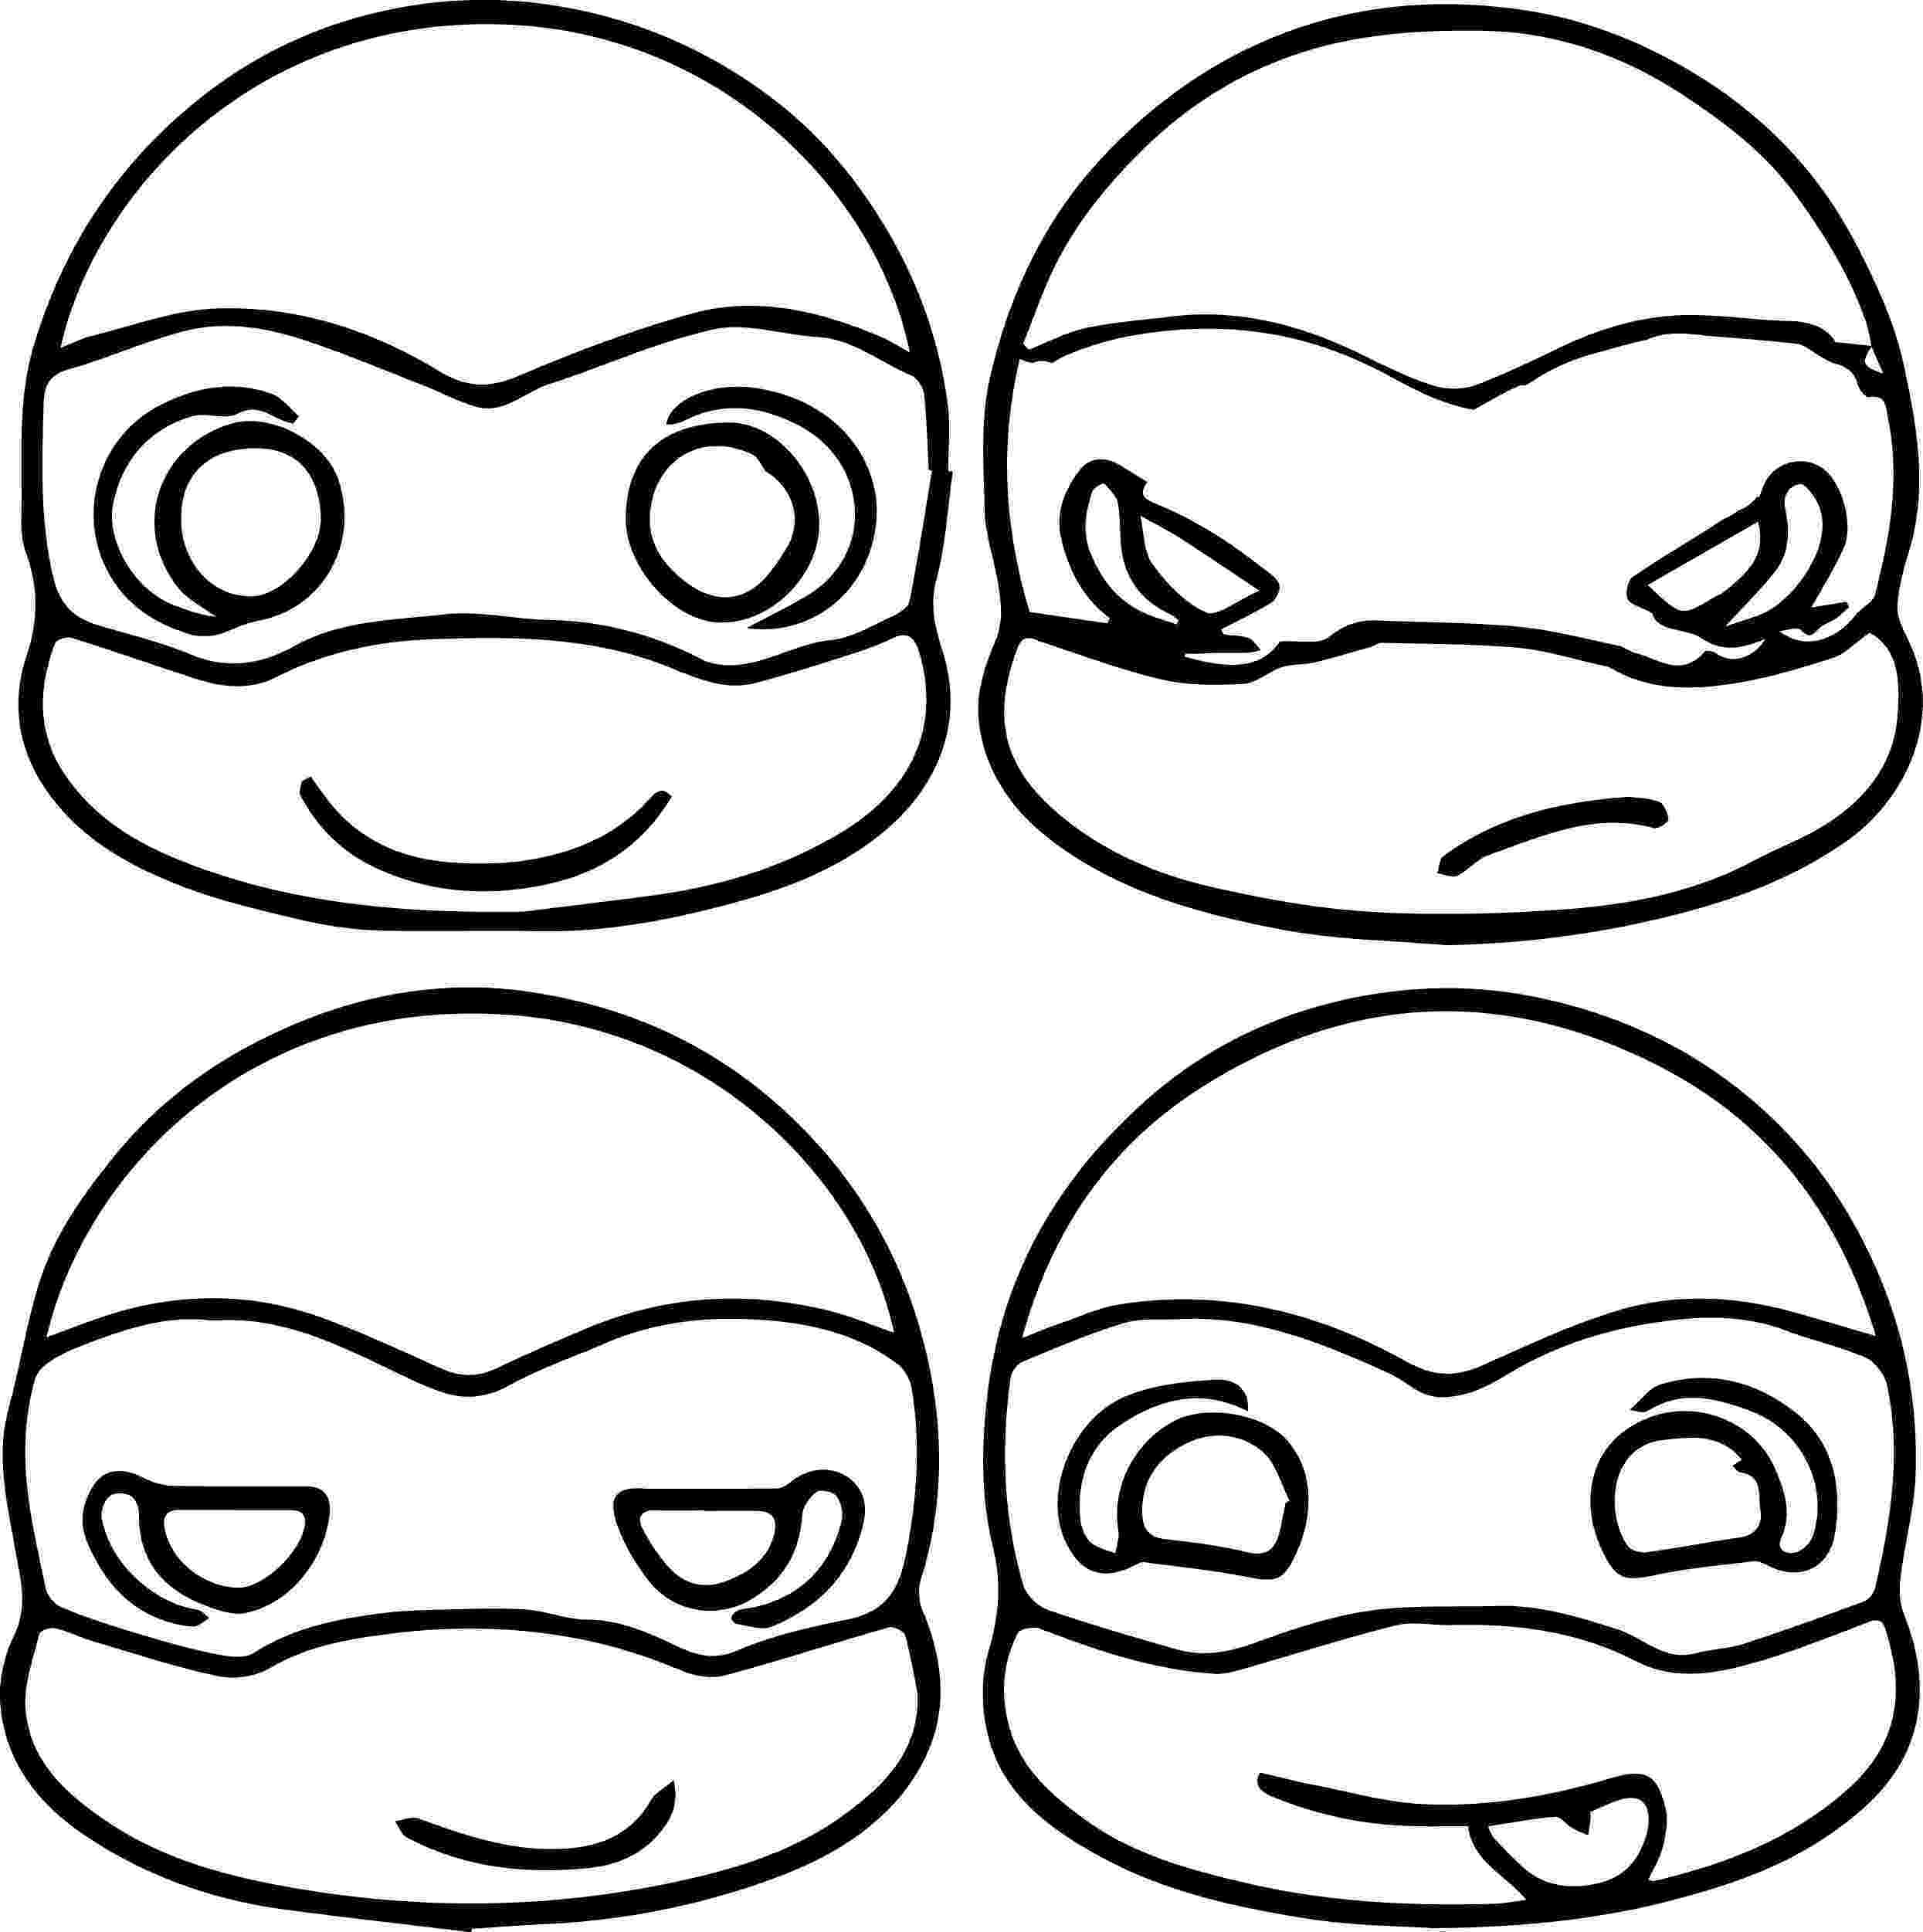 tmnt coloring pictures coloring pages teenage mutant ninja turtles tmnt page coloring pictures tmnt